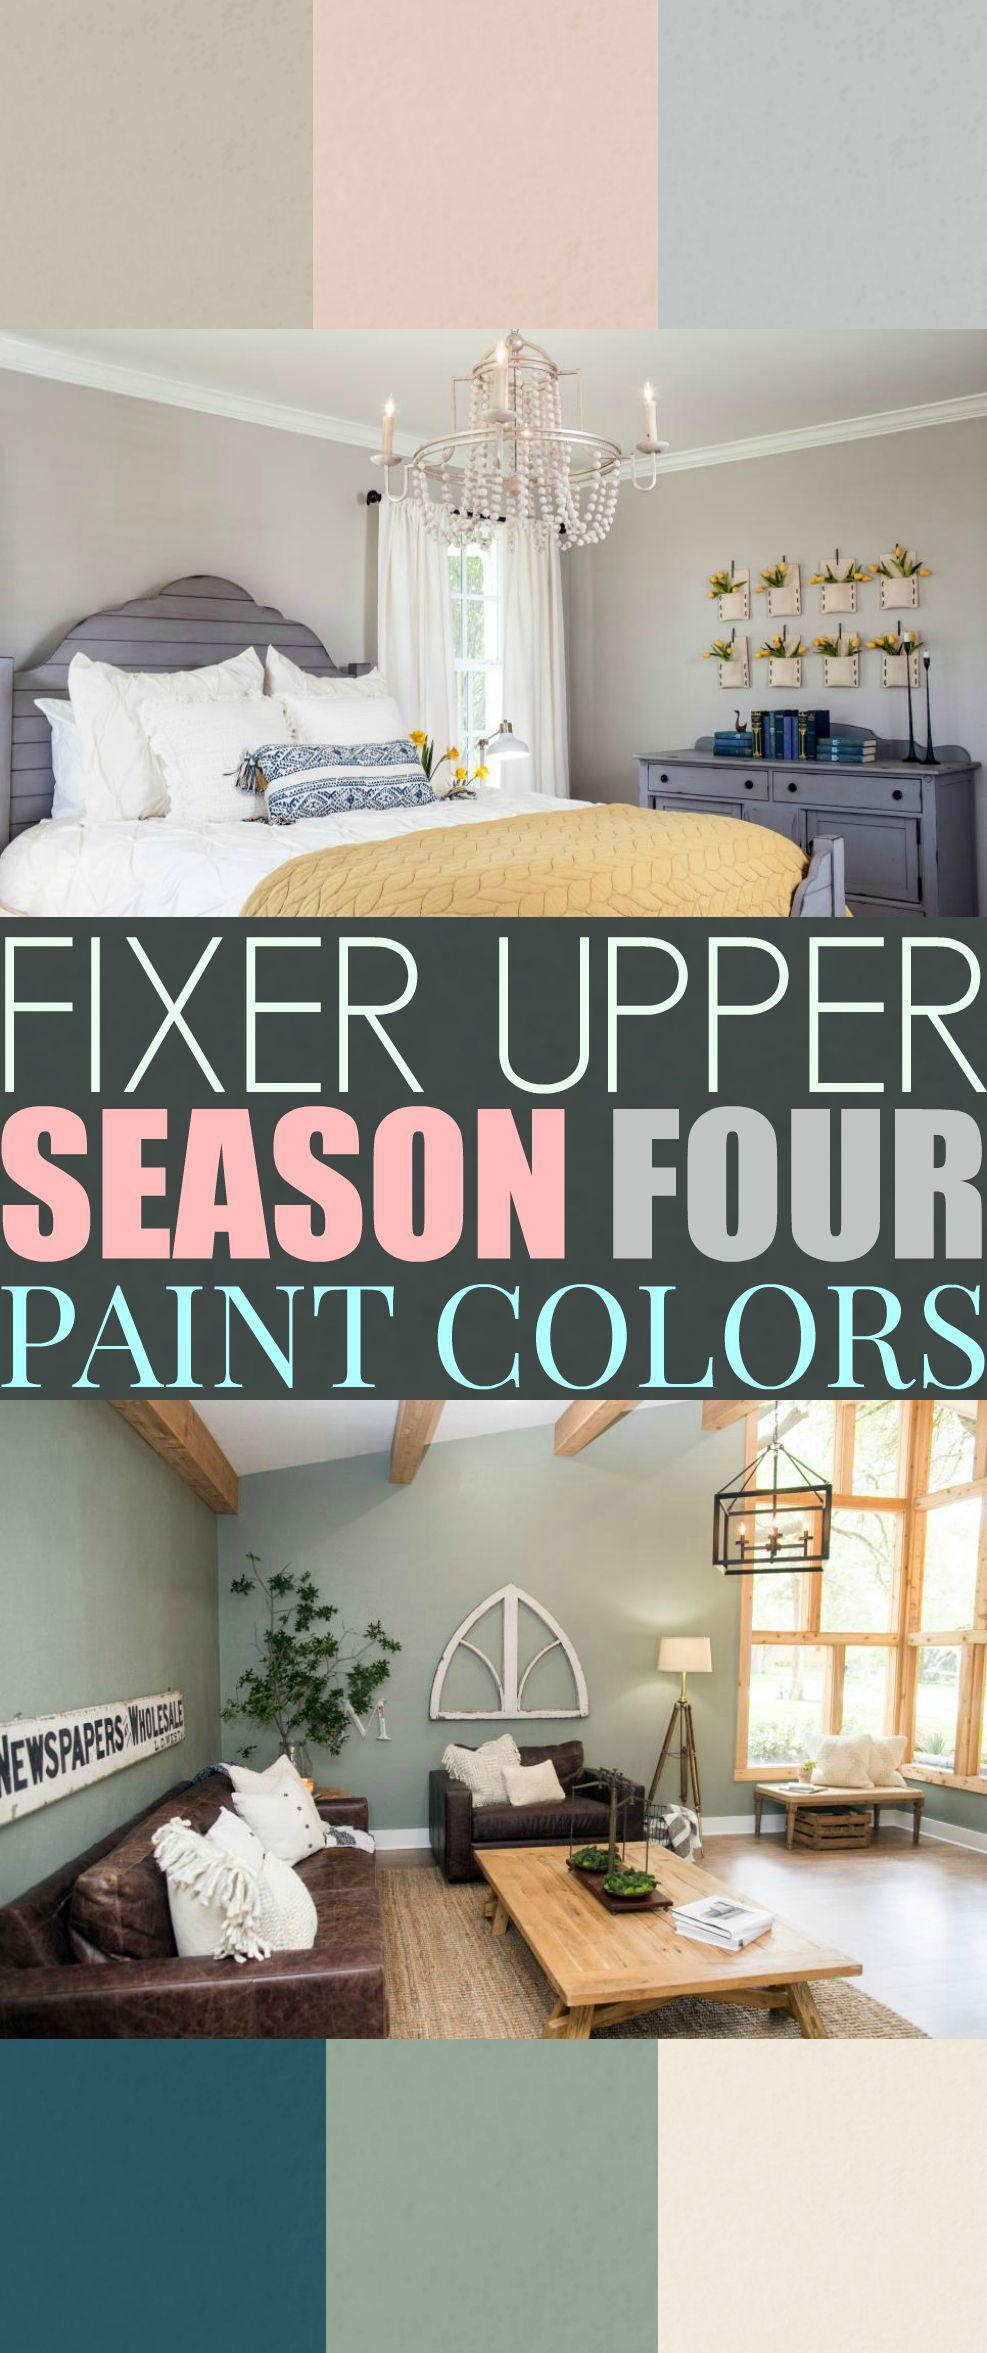 Fixer upper season four paint opportunity fixer upper for What kind of paint to use on kitchen cabinets for hgtv wall art